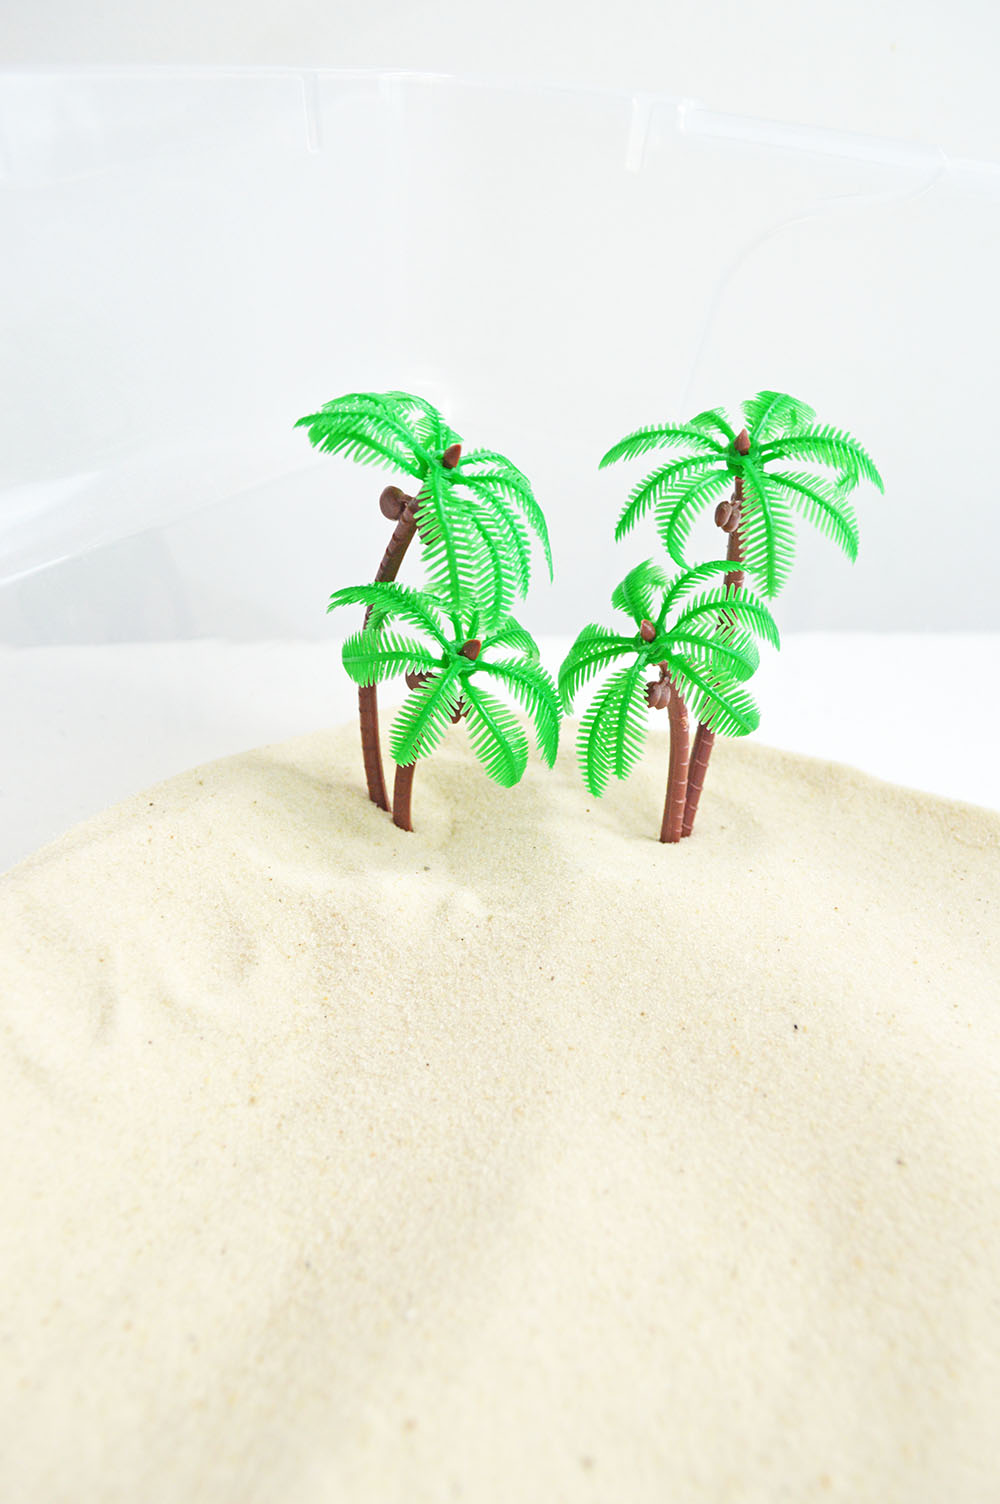 Artificial Palm Trees on Play Sand